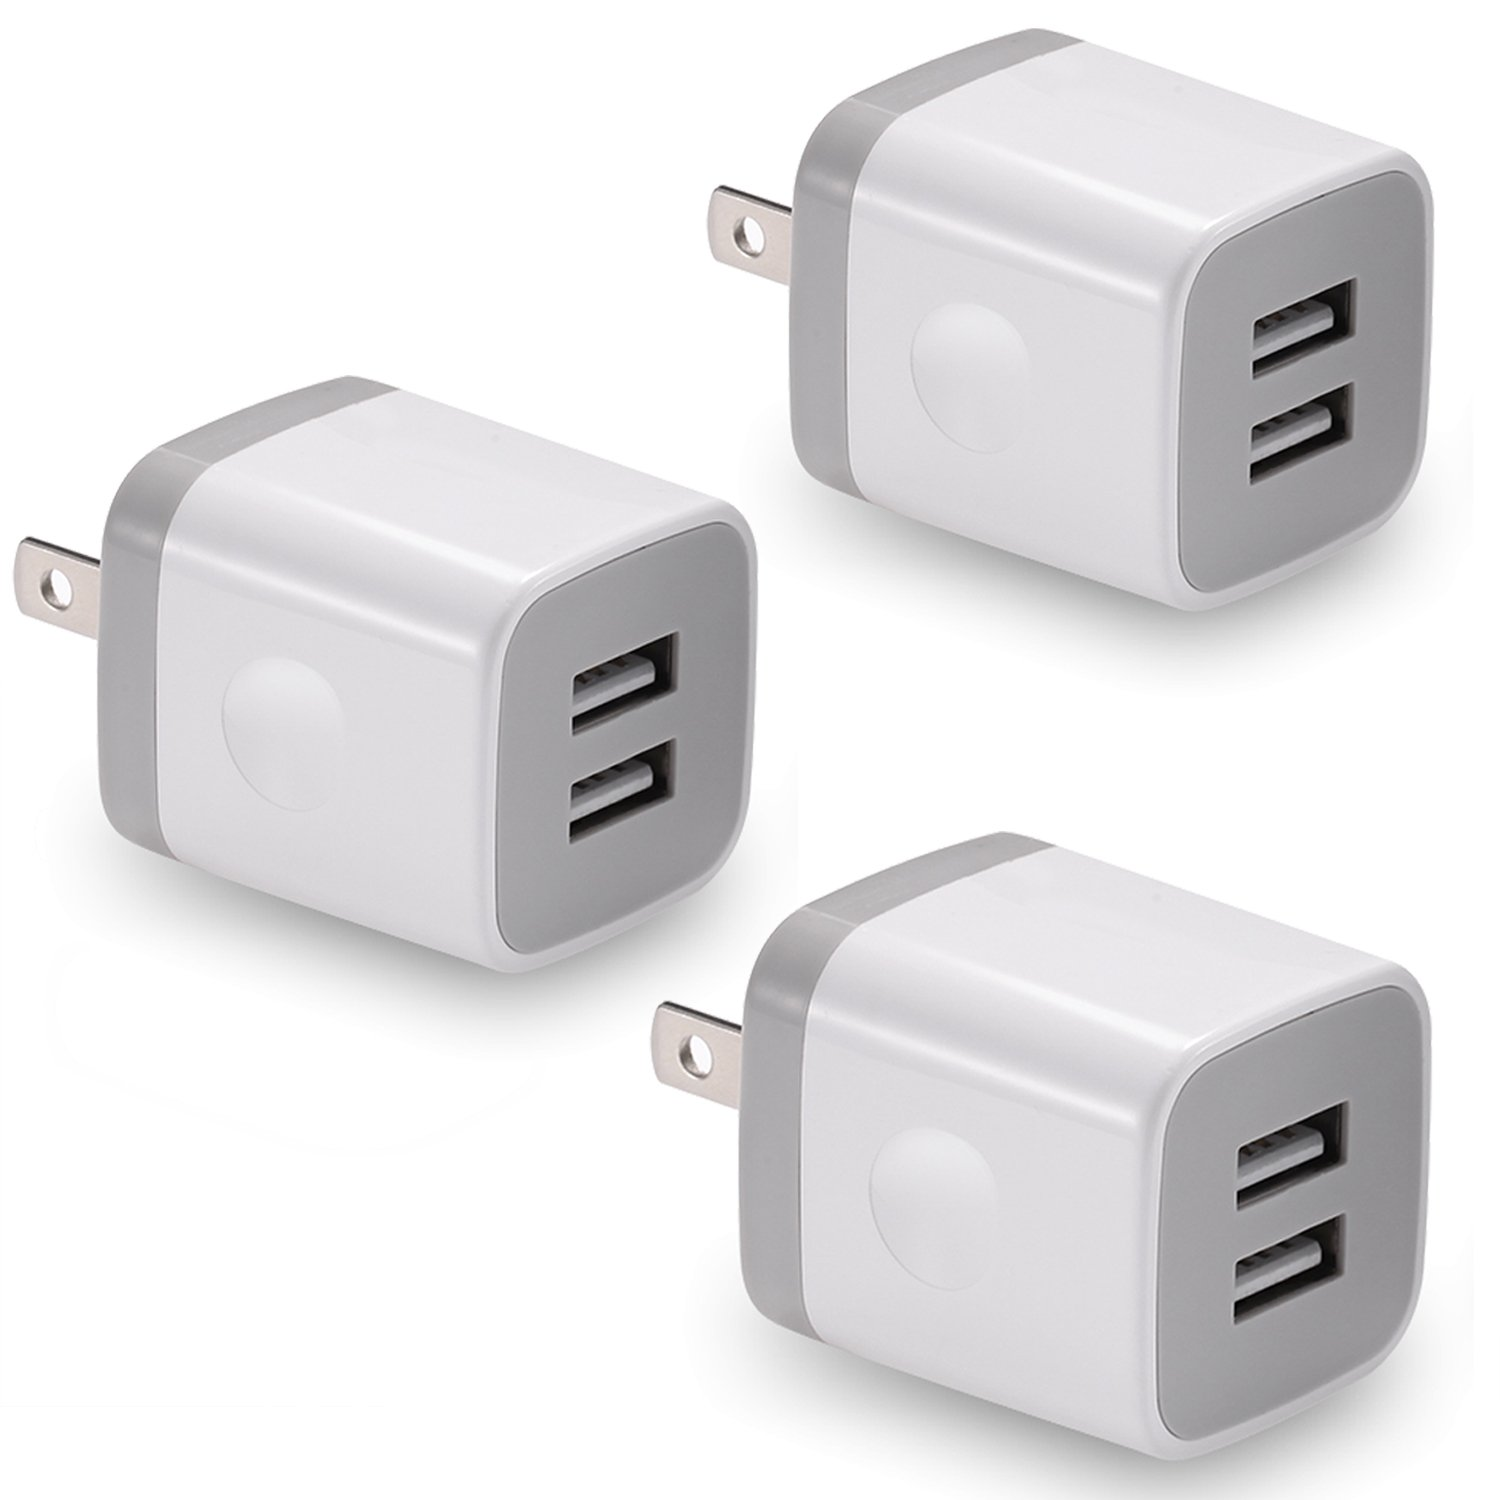 USB Wall Charger, BEST4ONE 3-Pack 2.1A/5V Dual Port USB Plug Power Adapter Charging Cube Compatible with iPhone X 8/7/6 Plus SE/5S/4S, iPad, iPod, Samsung, Android Phone -White